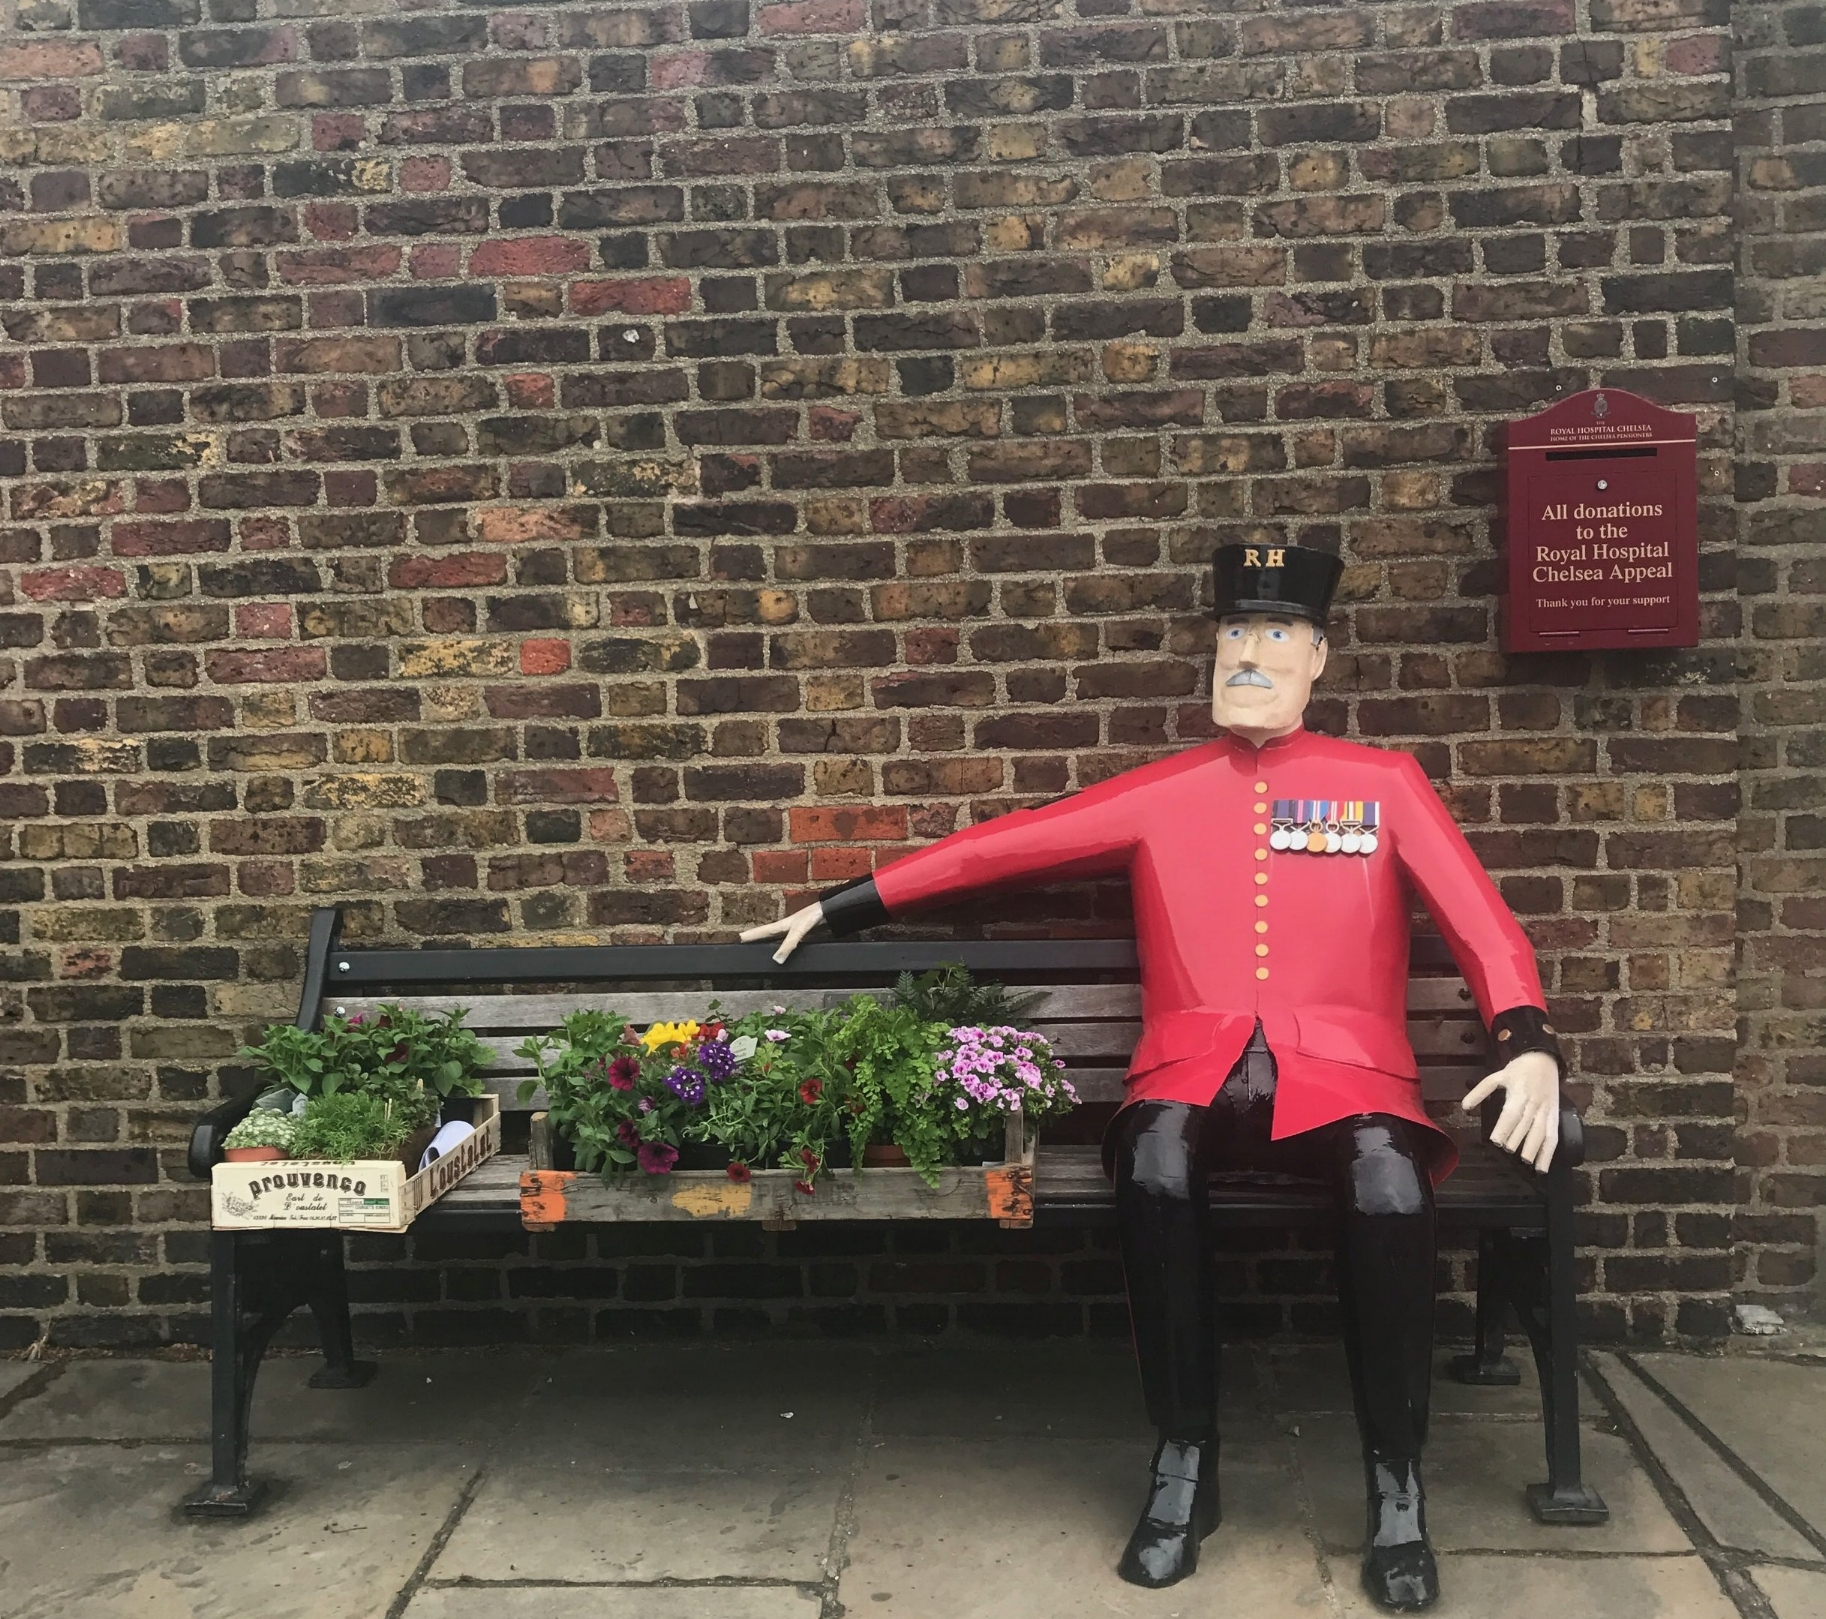 A Chelsea Pensioner Taking A Moment...before the show begins...